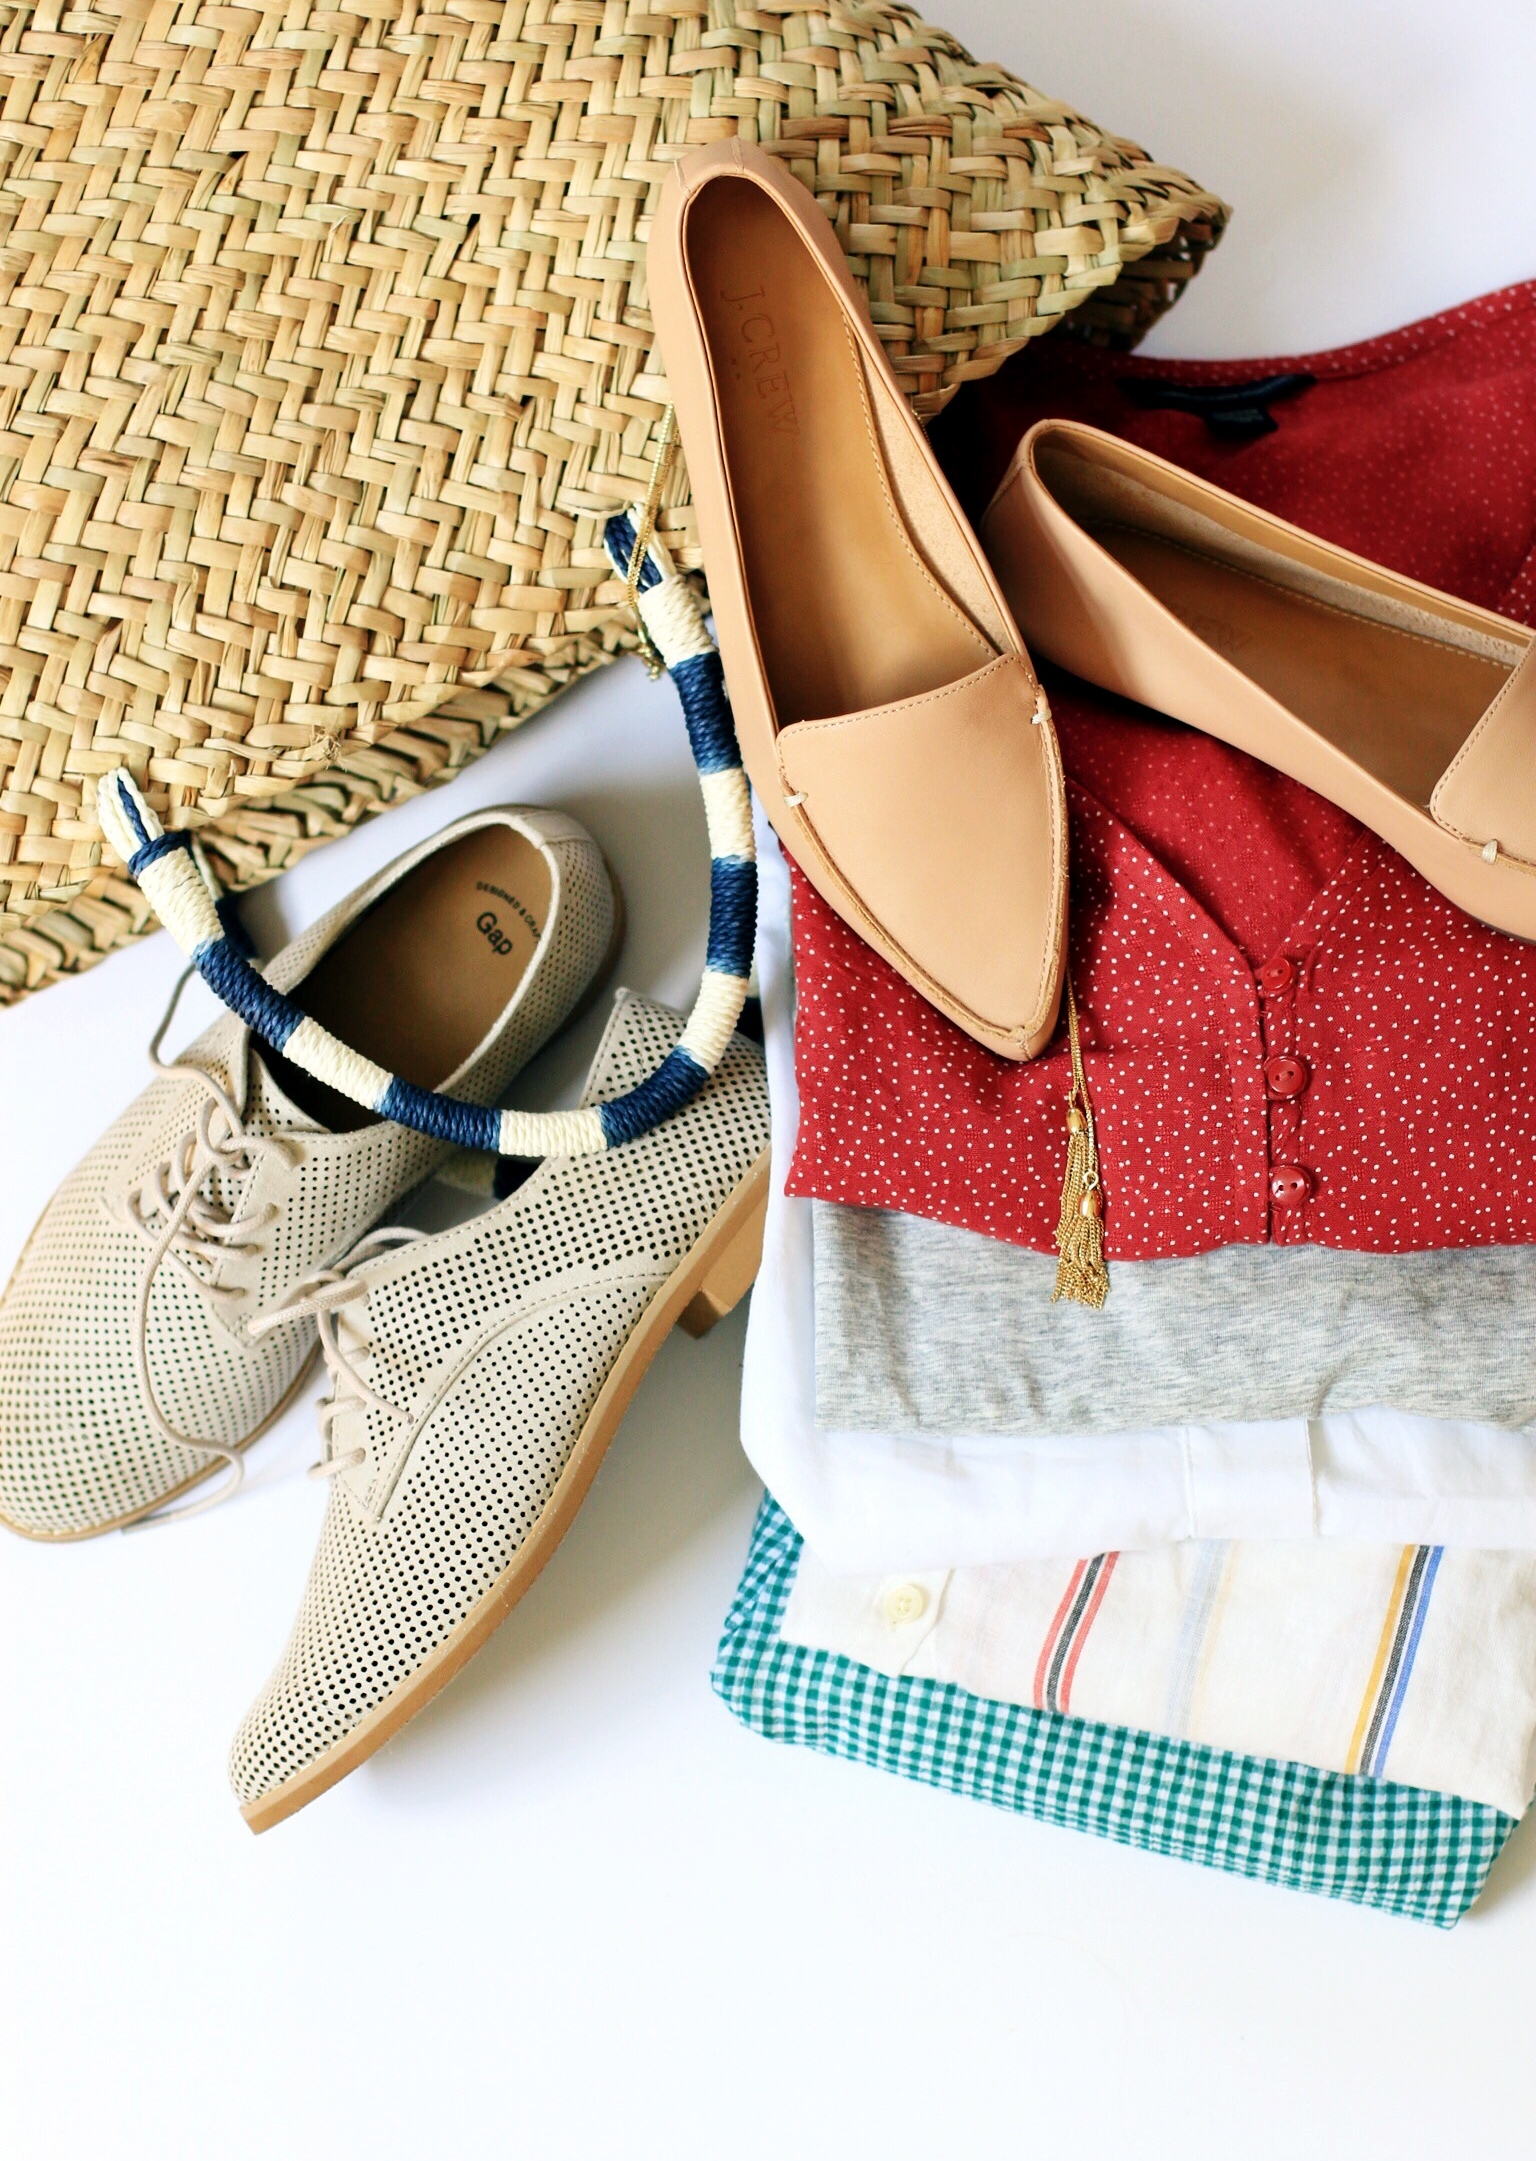 My shopping picks from the Waterloo Premium Outlets